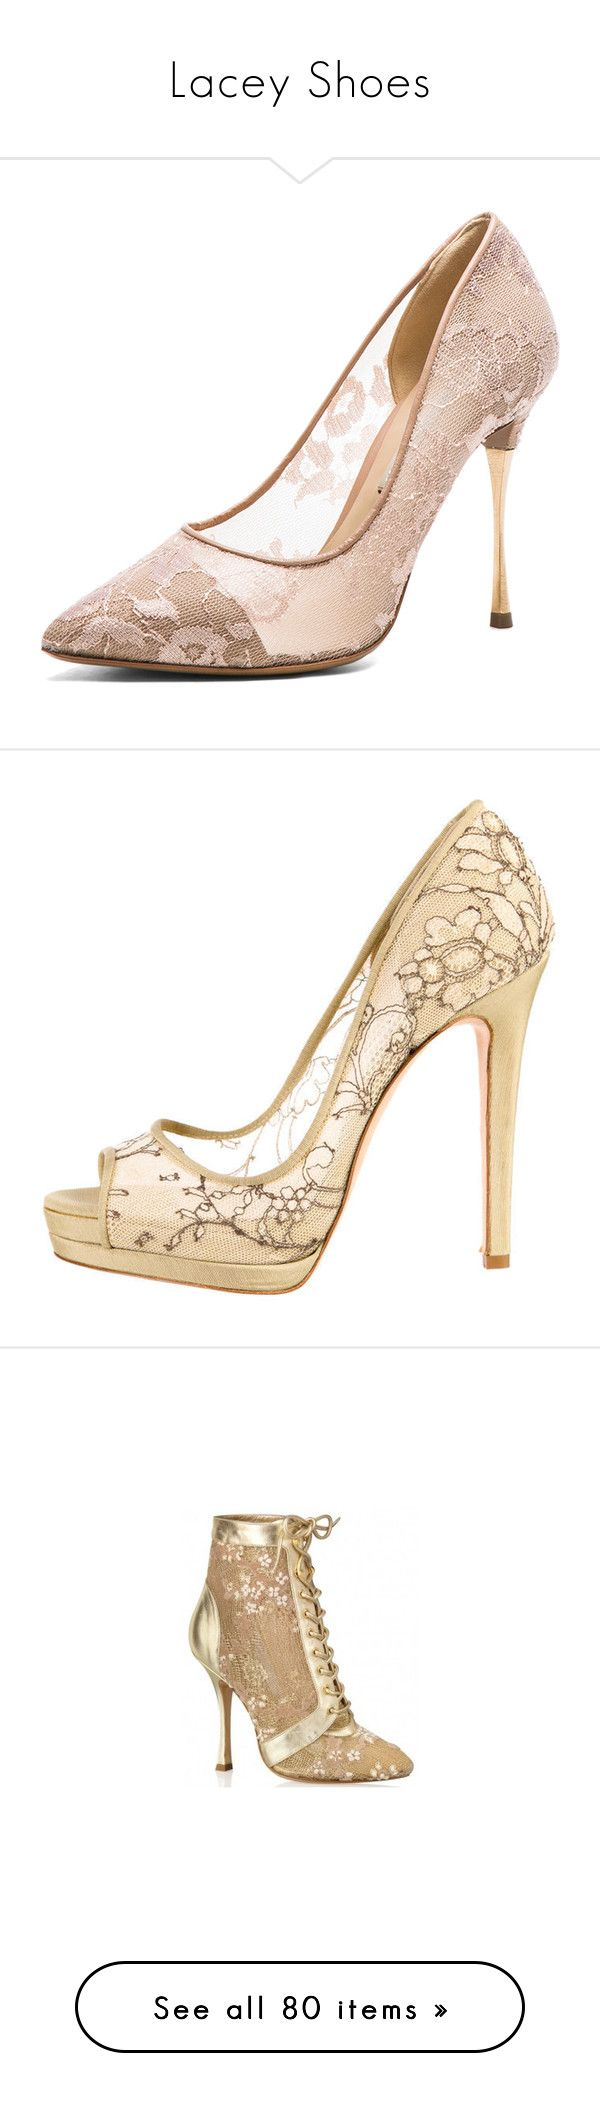 """Lacey Shoes"" by id-masked ❤ liked on Polyvore featuring shoes, pumps, heels, footwear, nude, lace shoes, heel pump, leather sole shoes, nude pumps and nude court shoes"